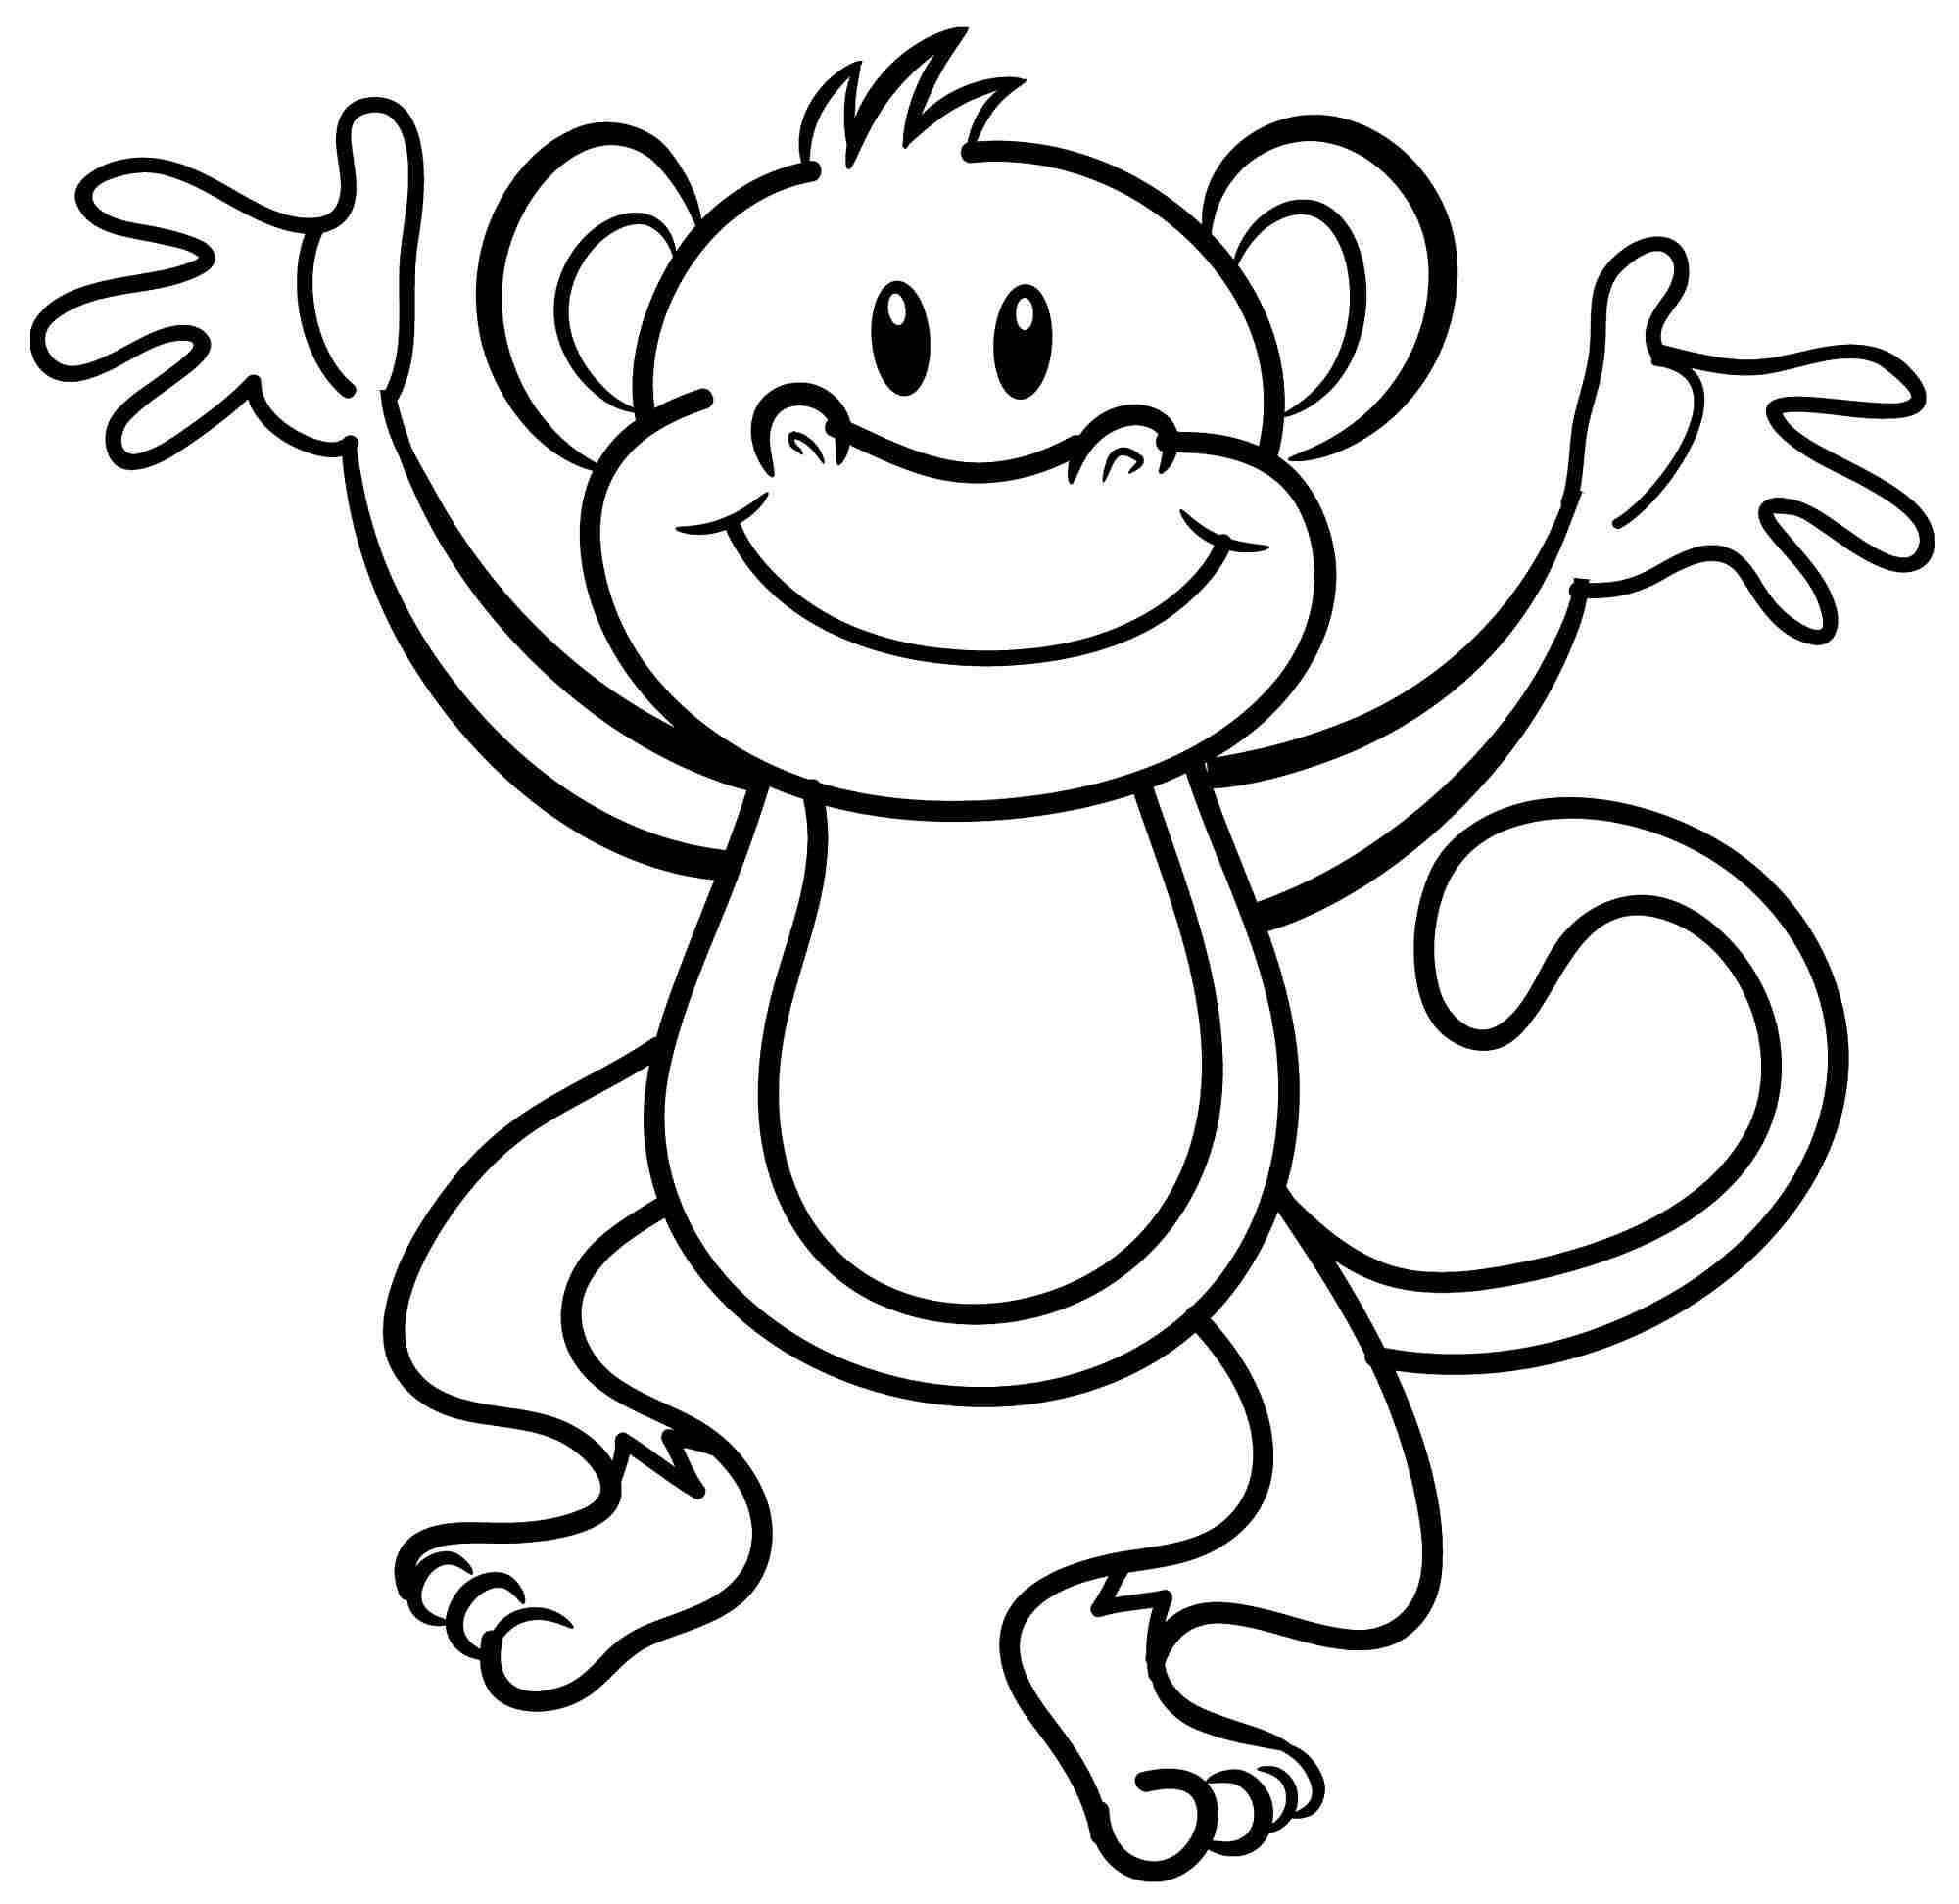 2000x1944 New Coloring Pages Monkey